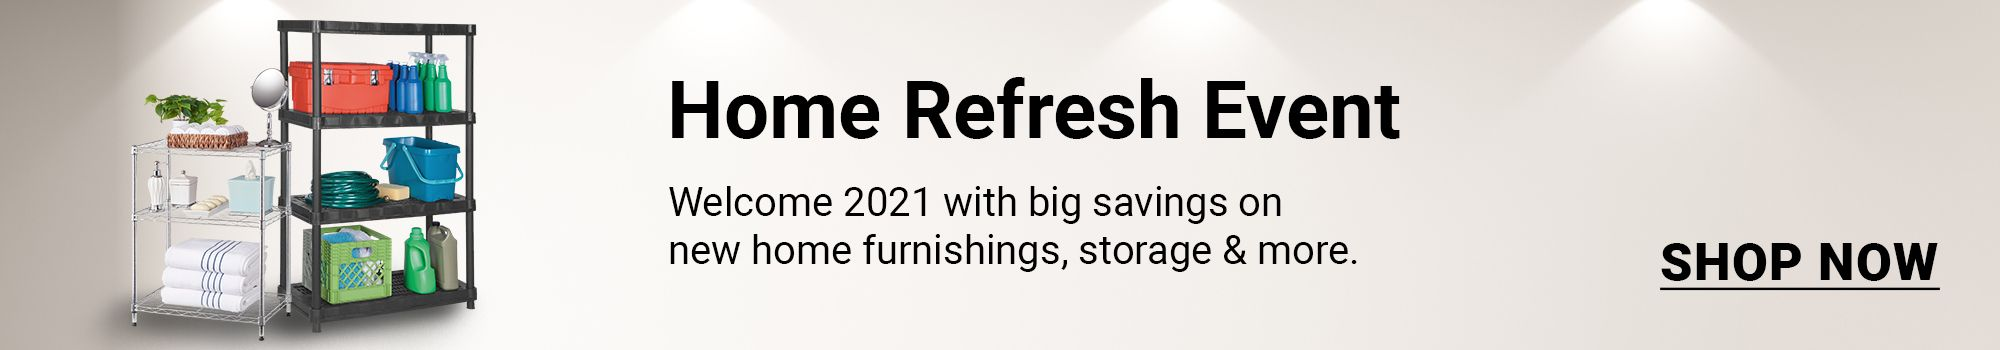 Home refresh event. Smart storage solutions and more for 2021. Click to shop now